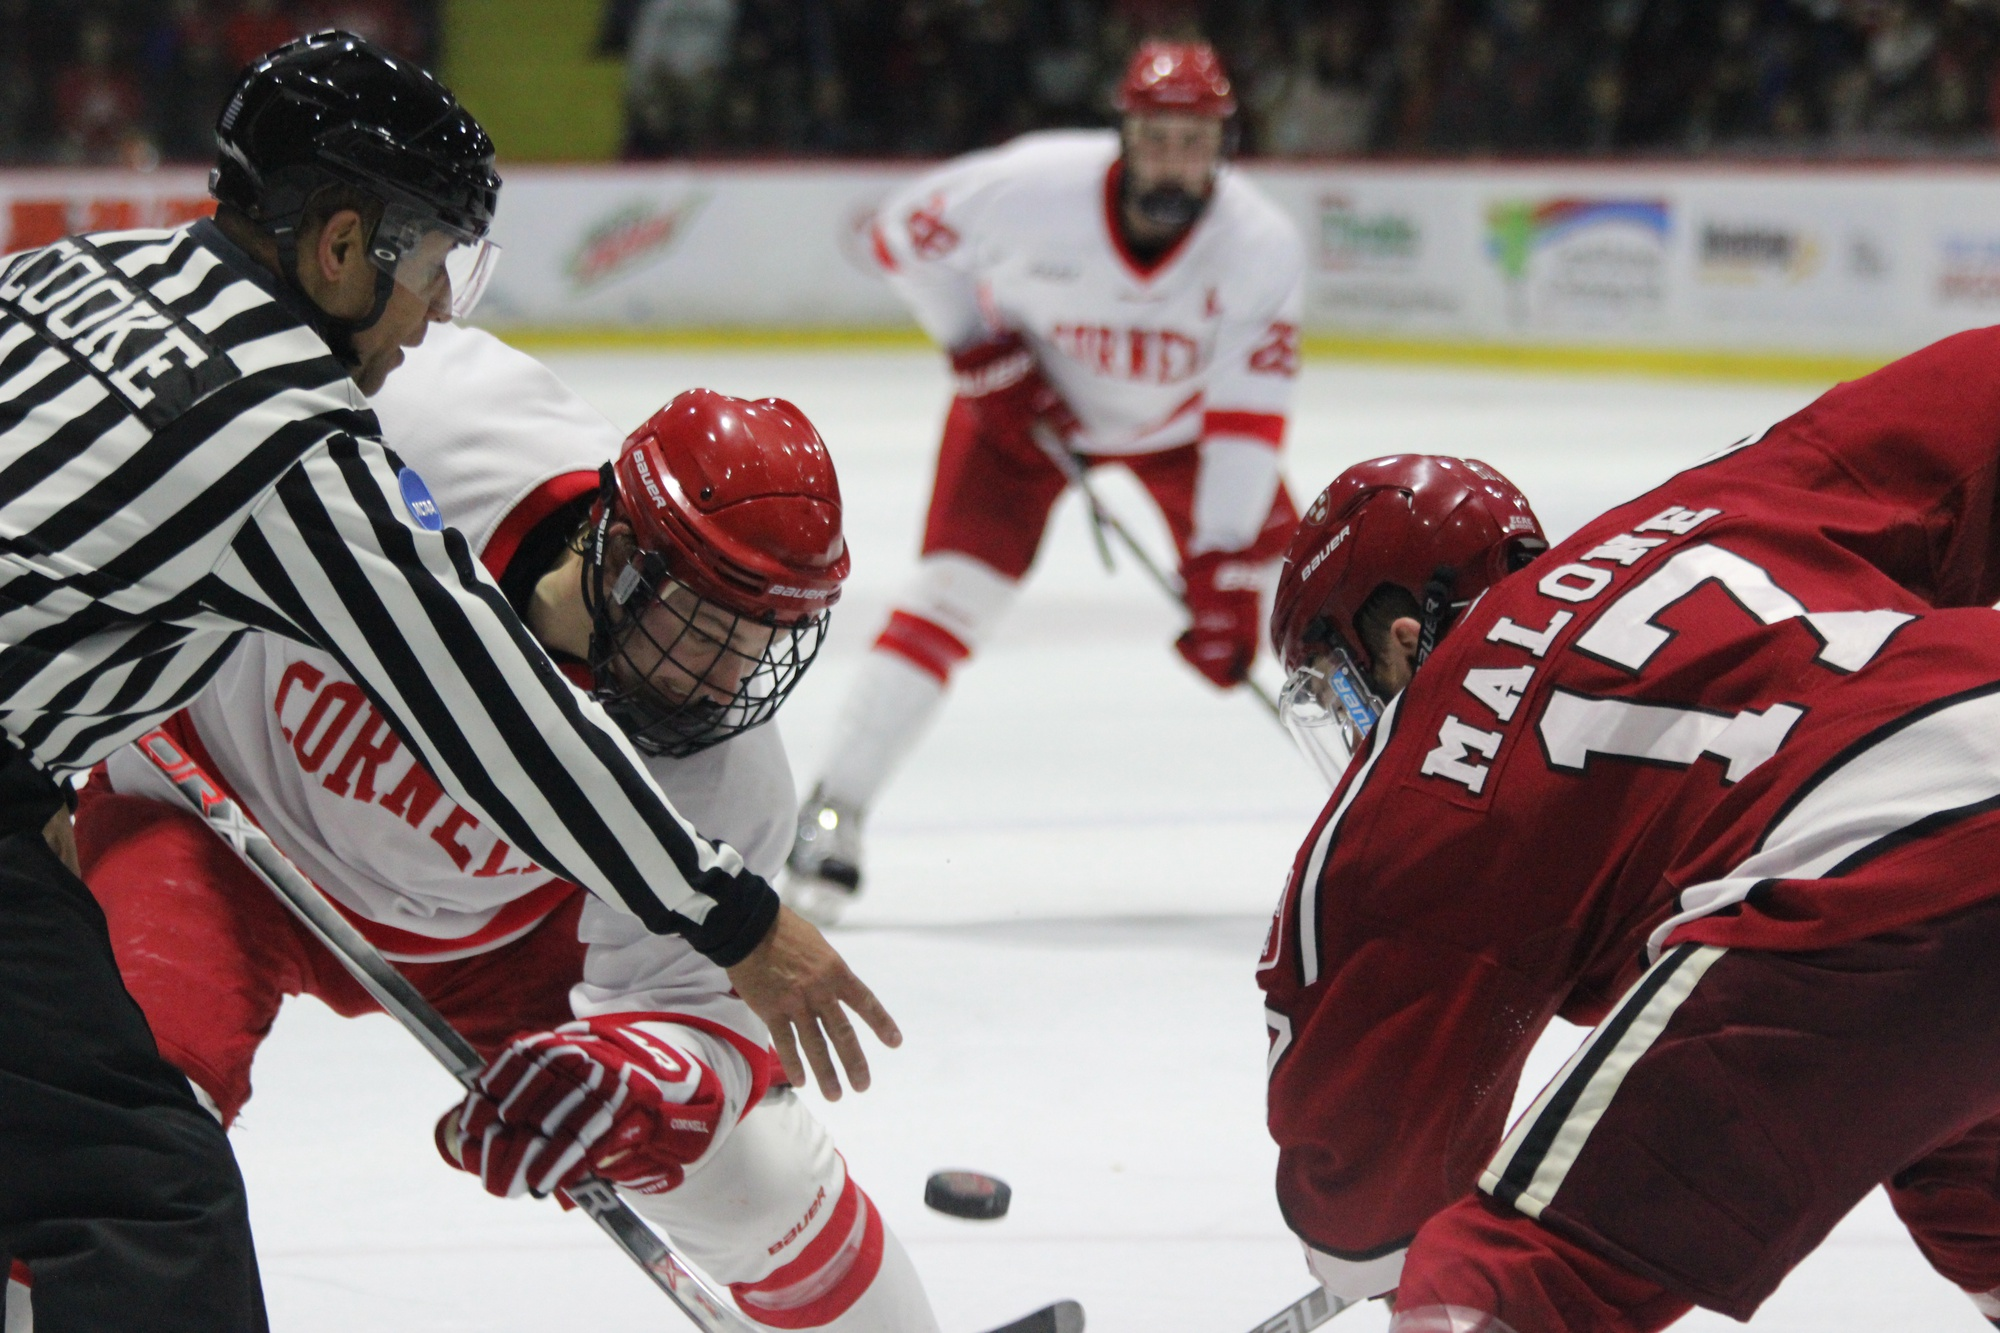 Senior forward Sean Malone readies himself for a face-off during the men's hockey team's 4-1 win over Cornell in January.